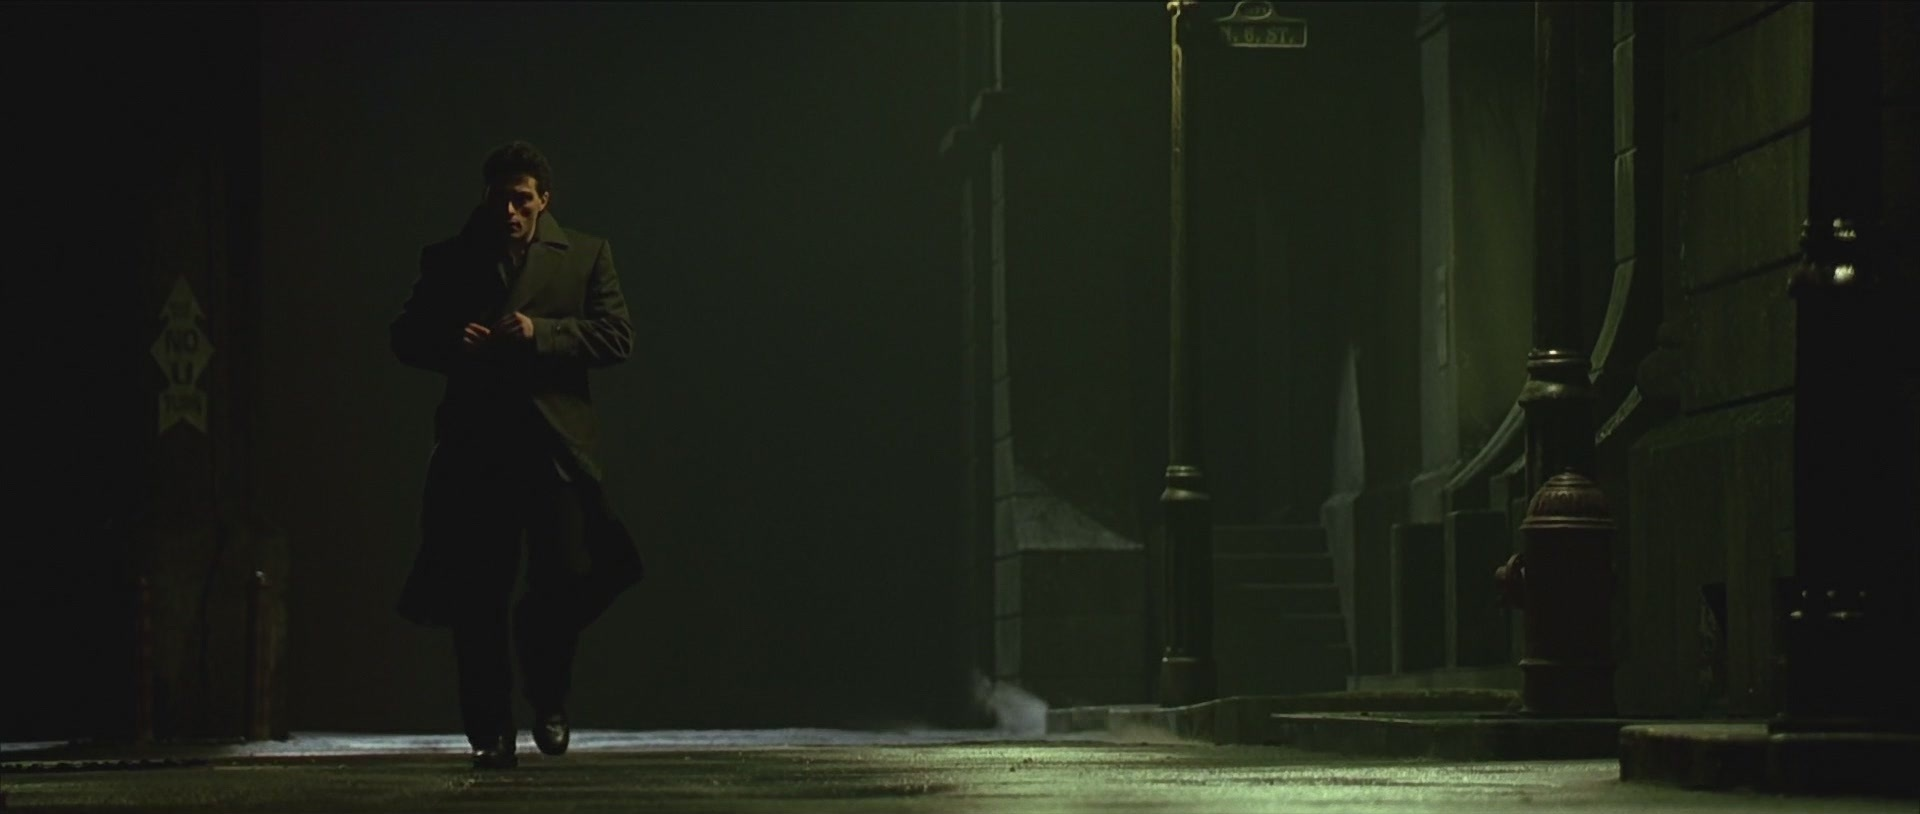 Http Www Fanpop Com Clubs Dark City Images 26344511 Title Dark City Screencap